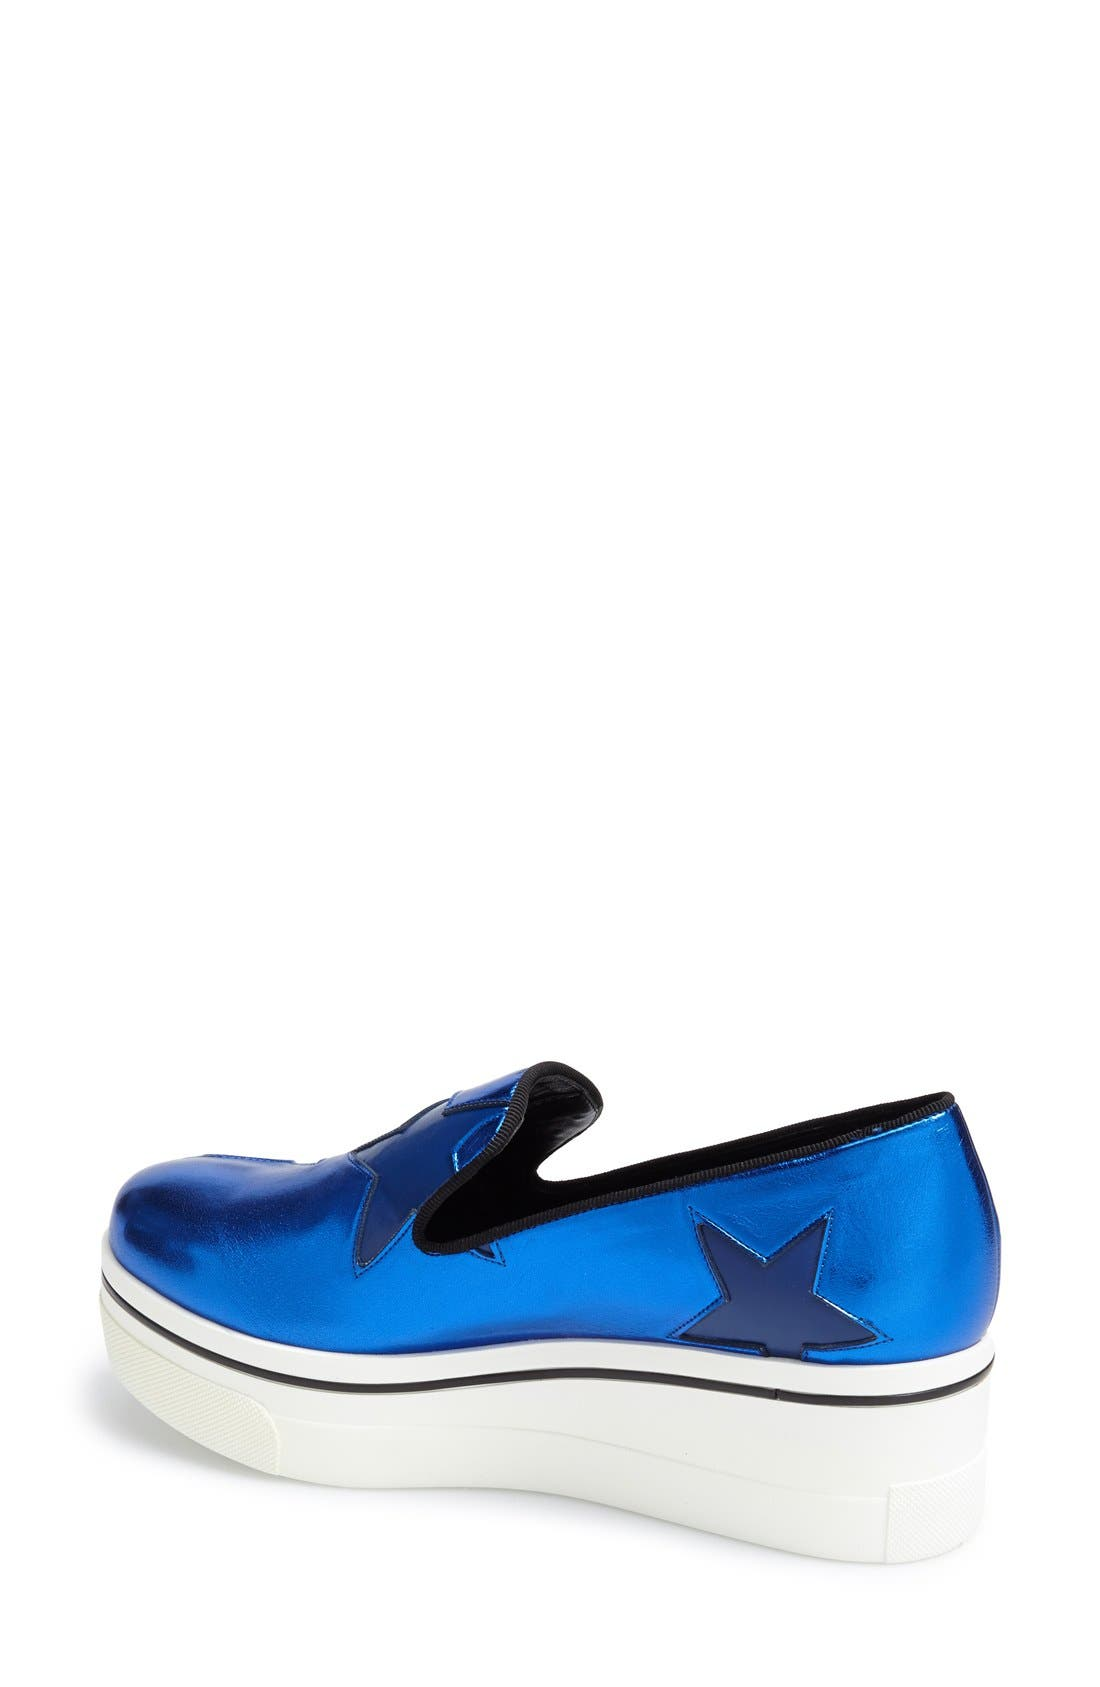 Alternate Image 2  - Stella McCartney 'Star' Platform Loafer (Women)